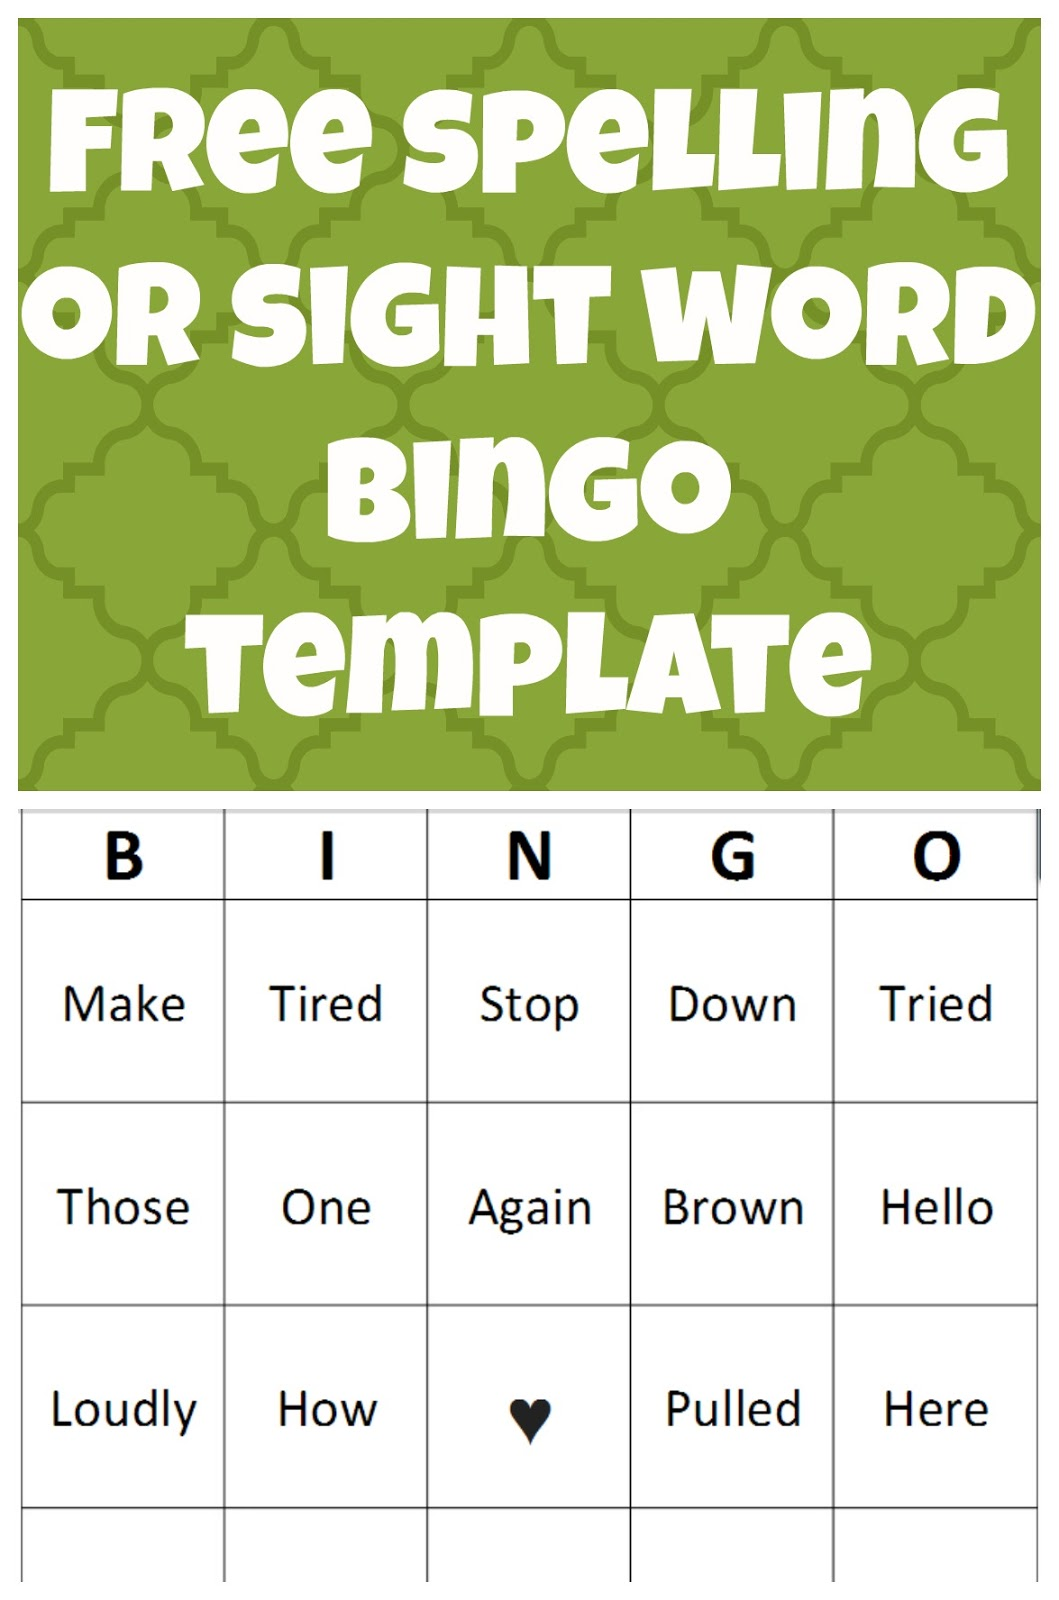 Free Spelling Or Sight Word Bingo Template